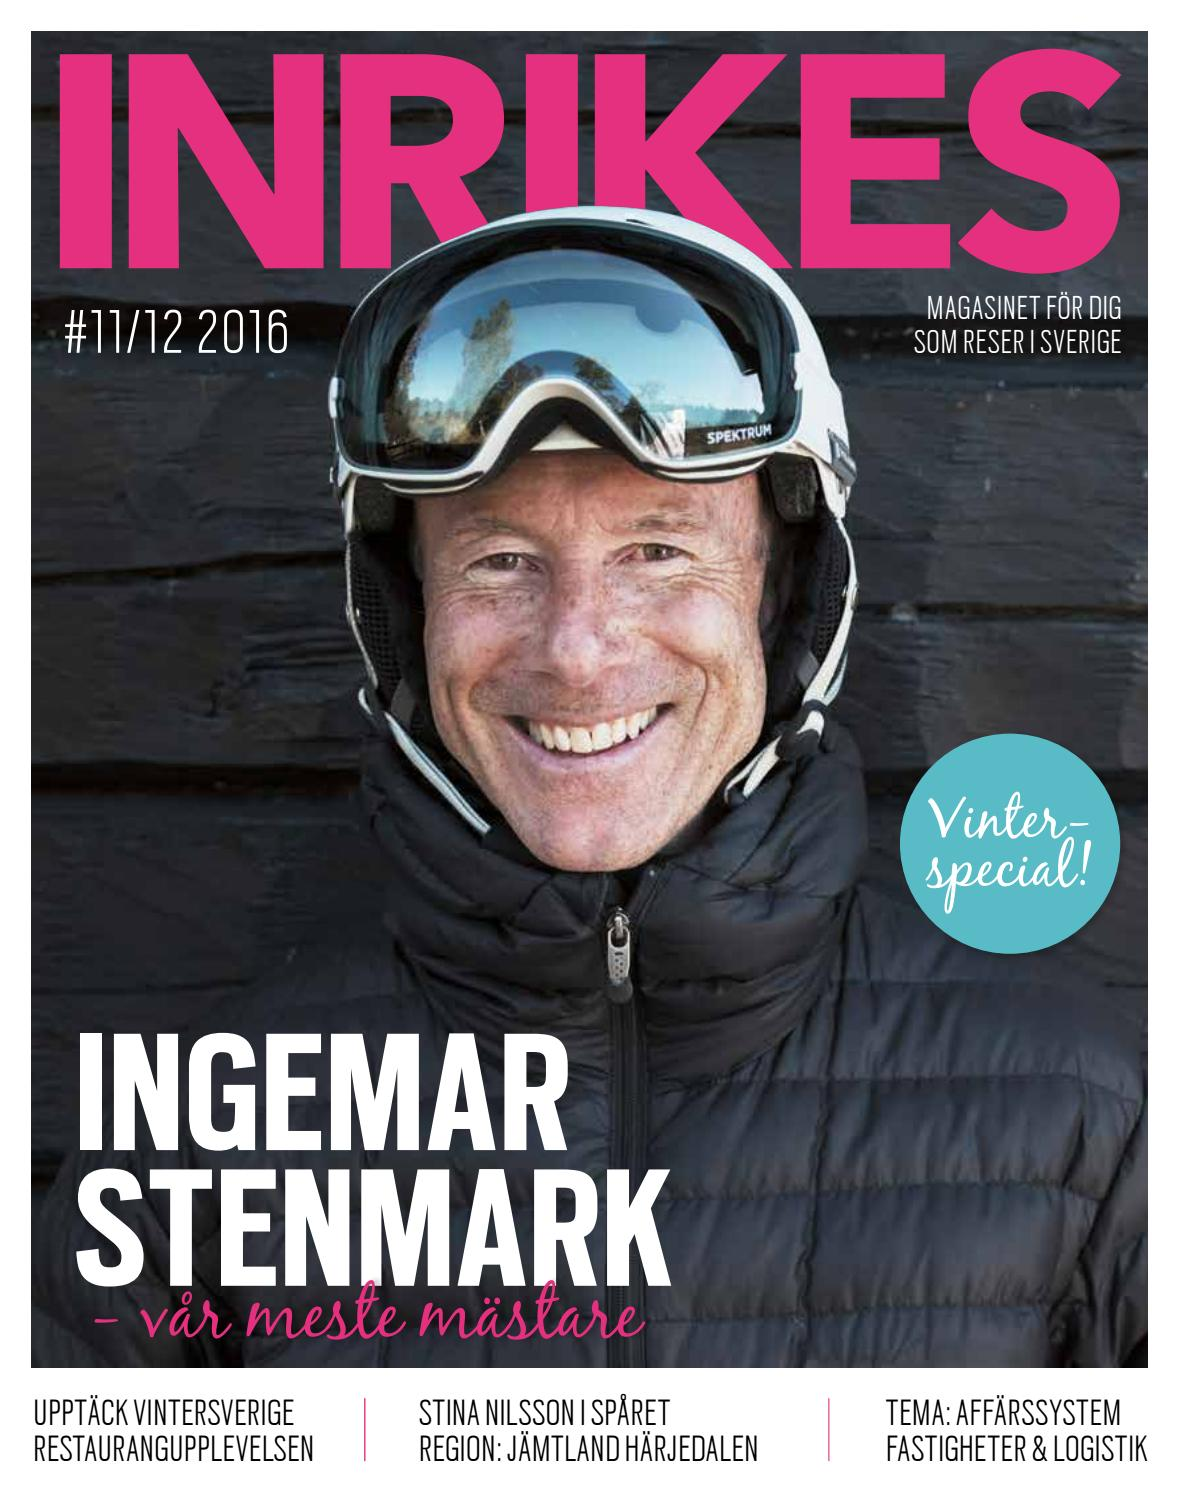 Inrikes 11 12 2016 by INRIKES Magasin - issuu 65228b82eb1c1